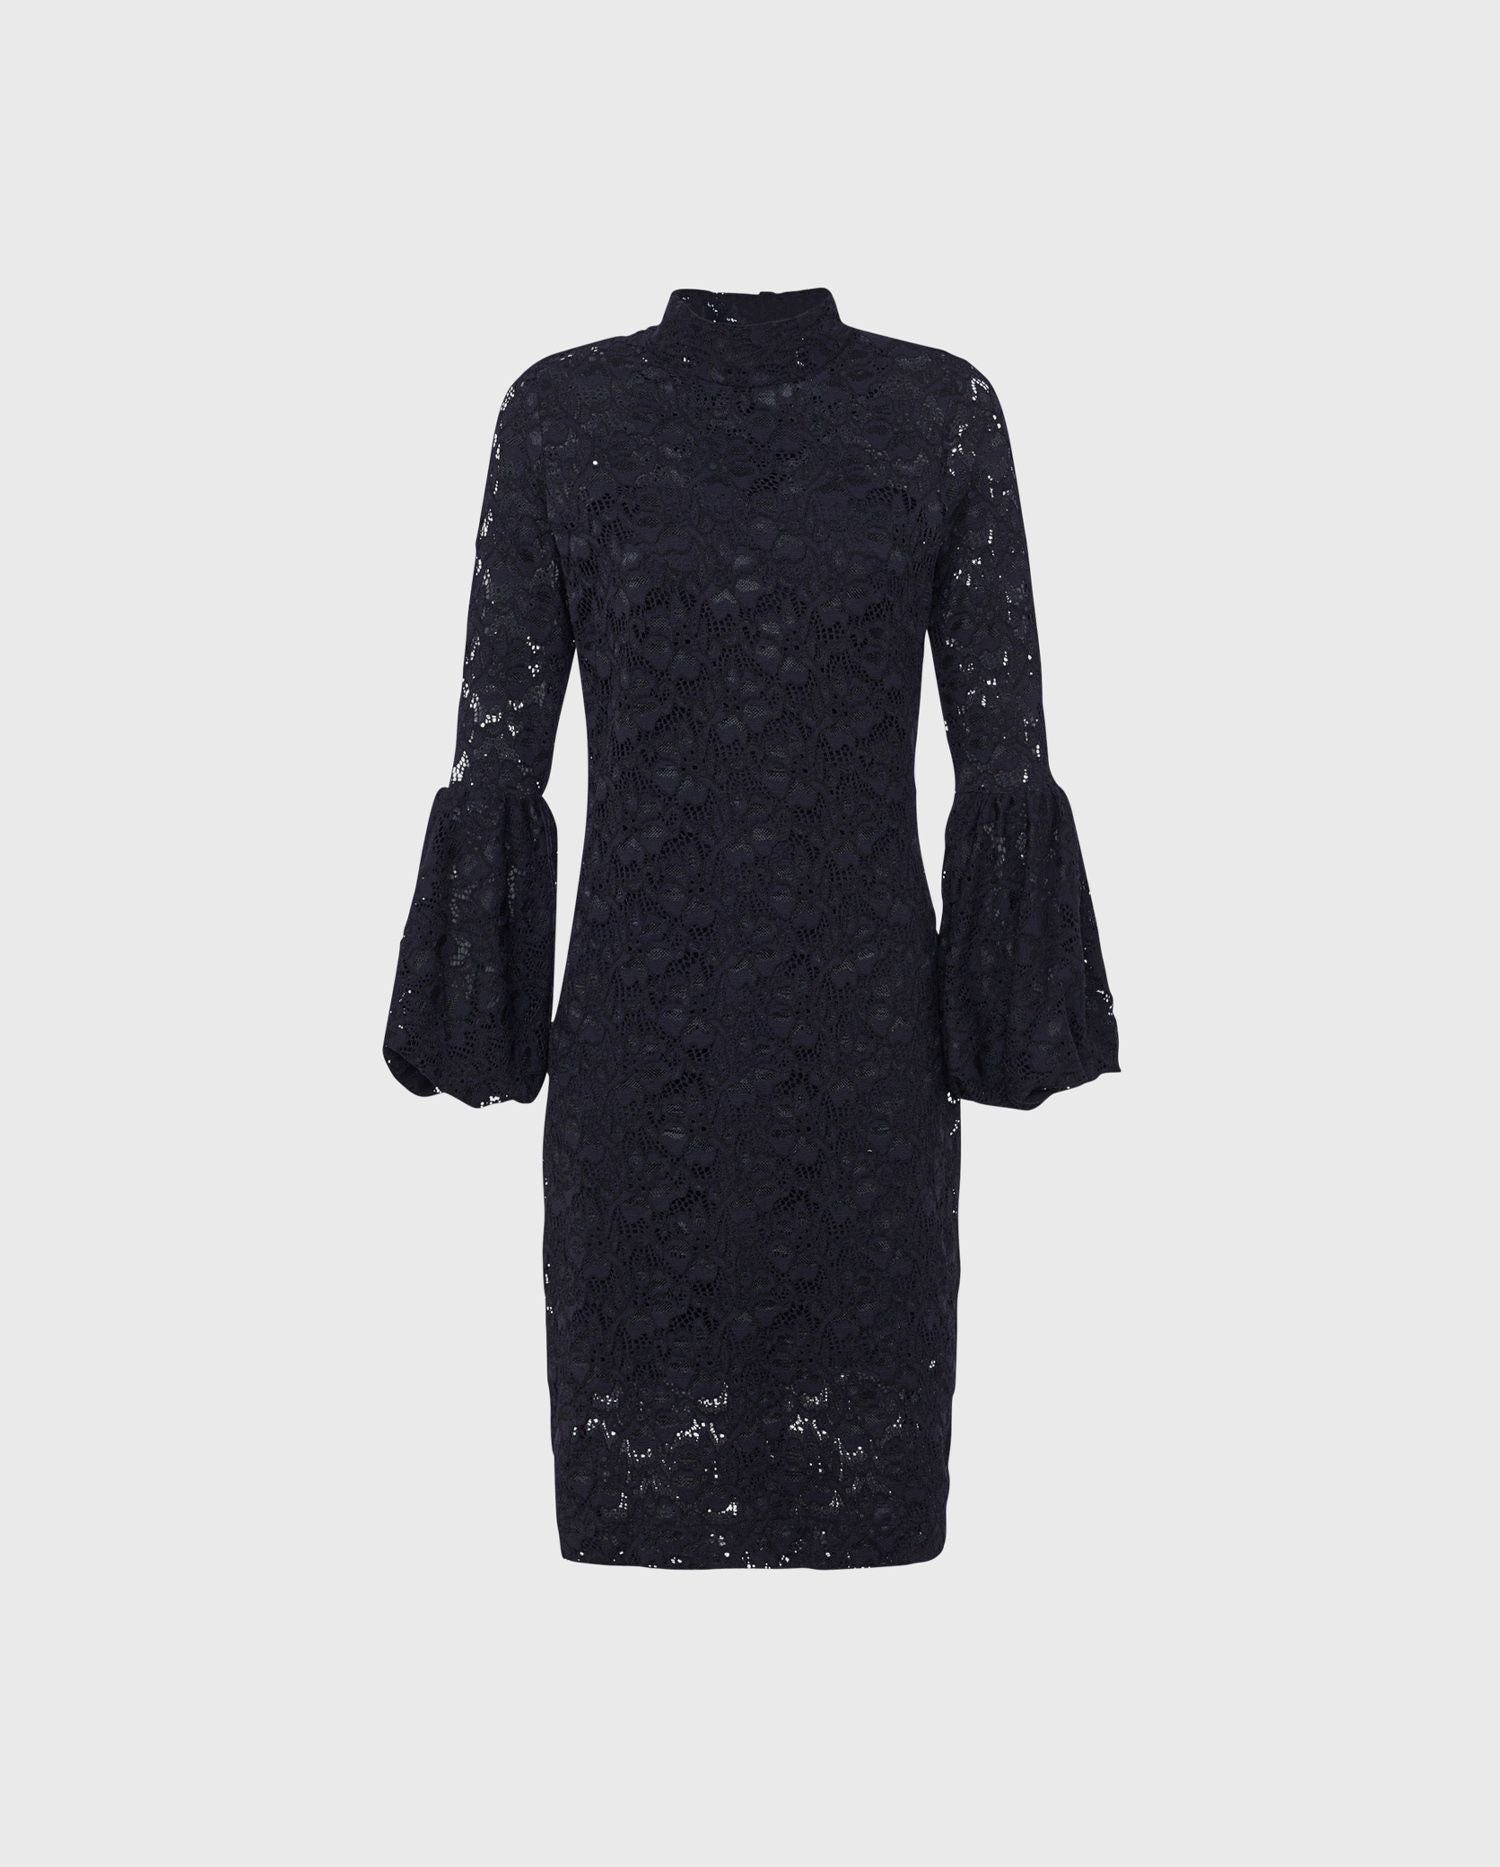 Add a look of Parisian chic to your style with the black lace, statement sleeve LULLY dress.